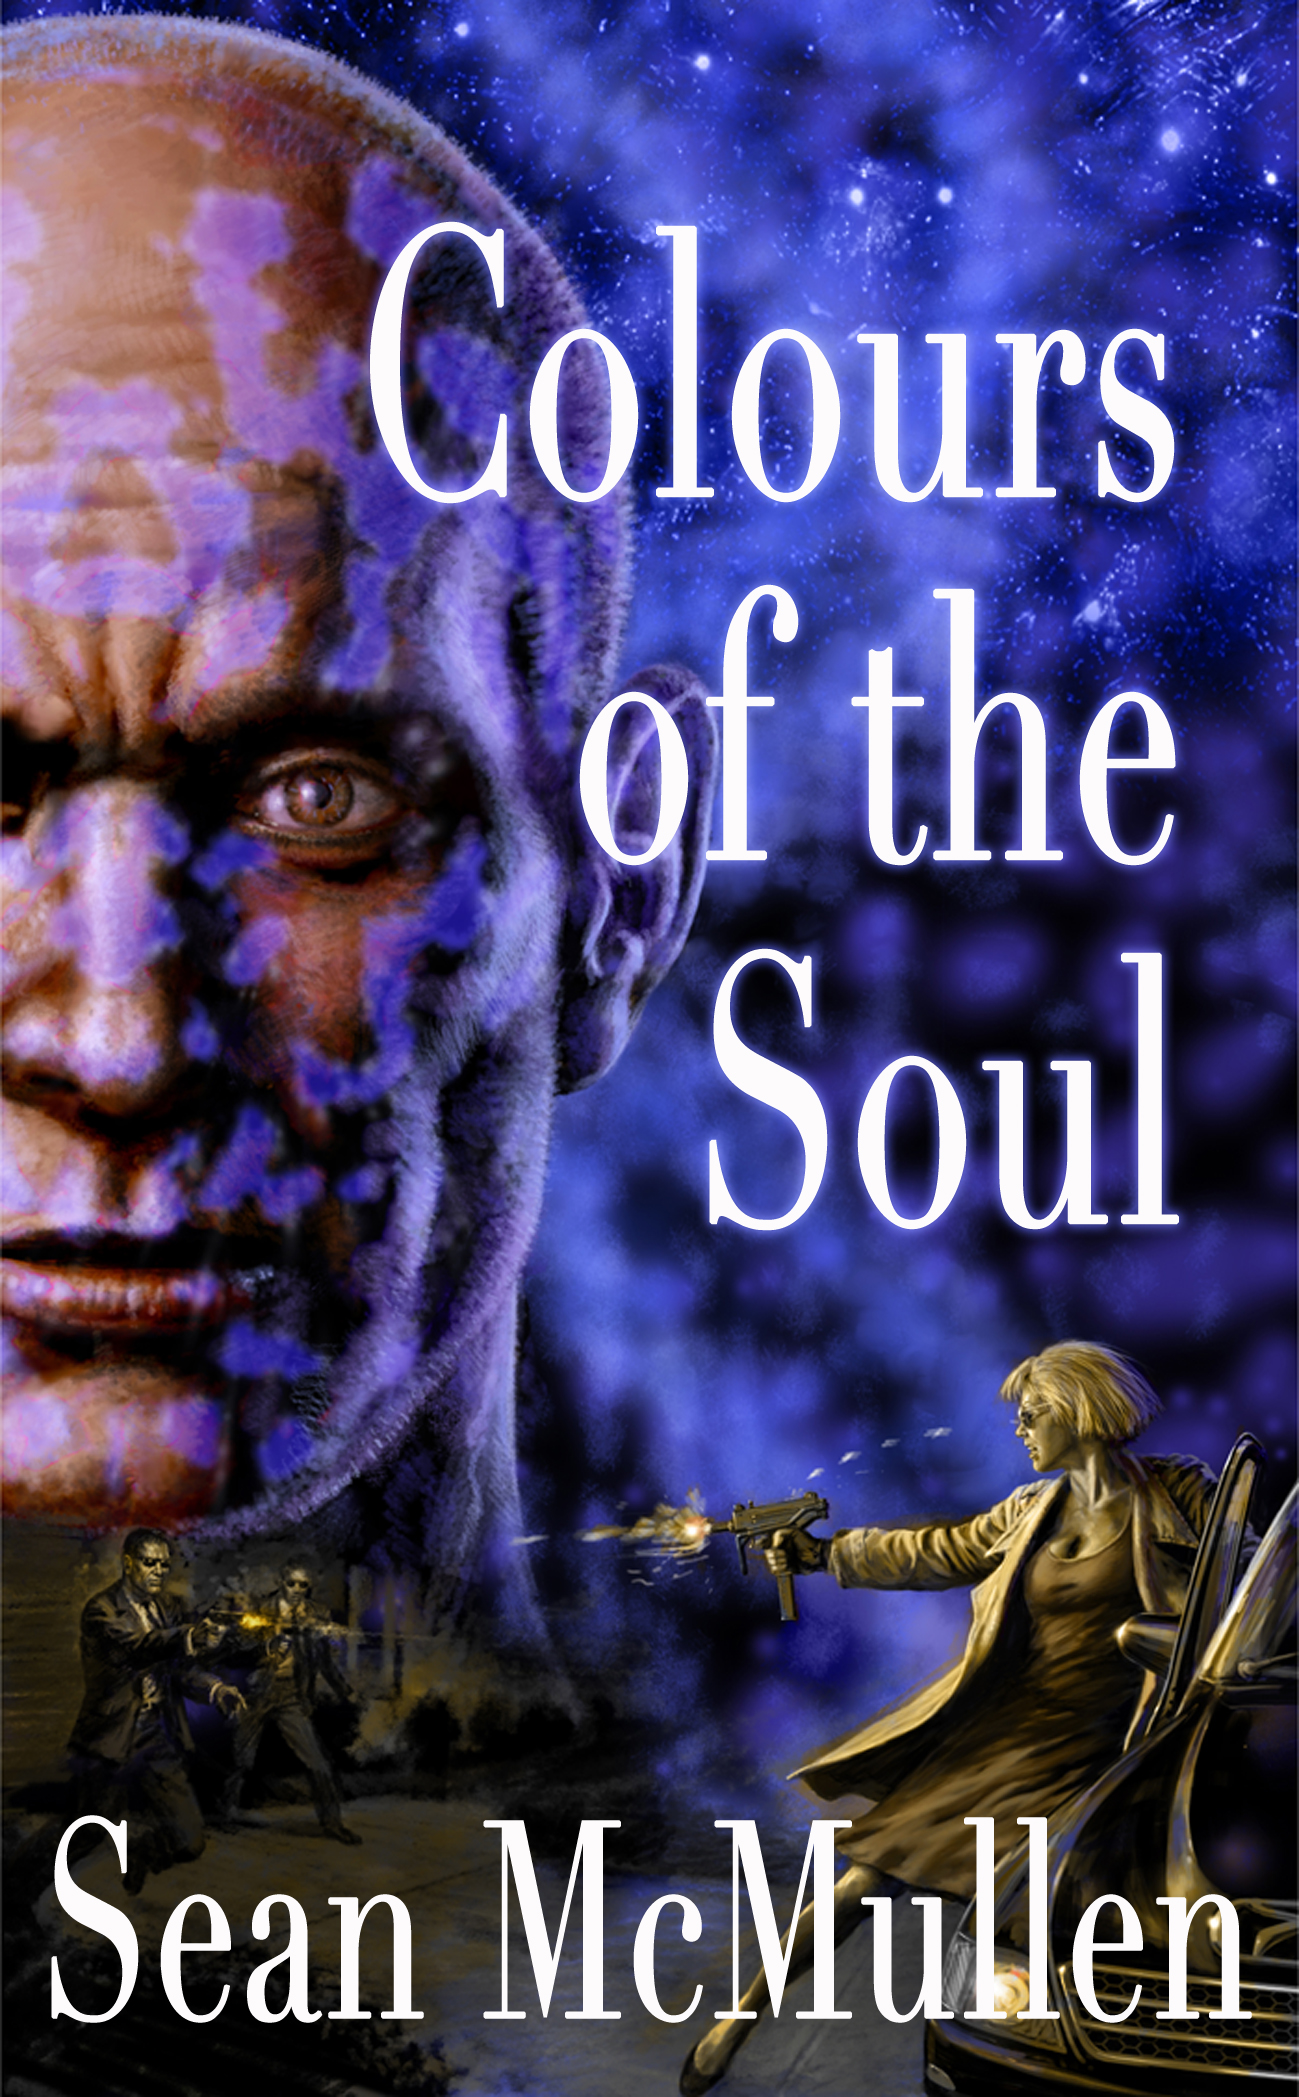 Colours of the Soul, by Sean McMullen